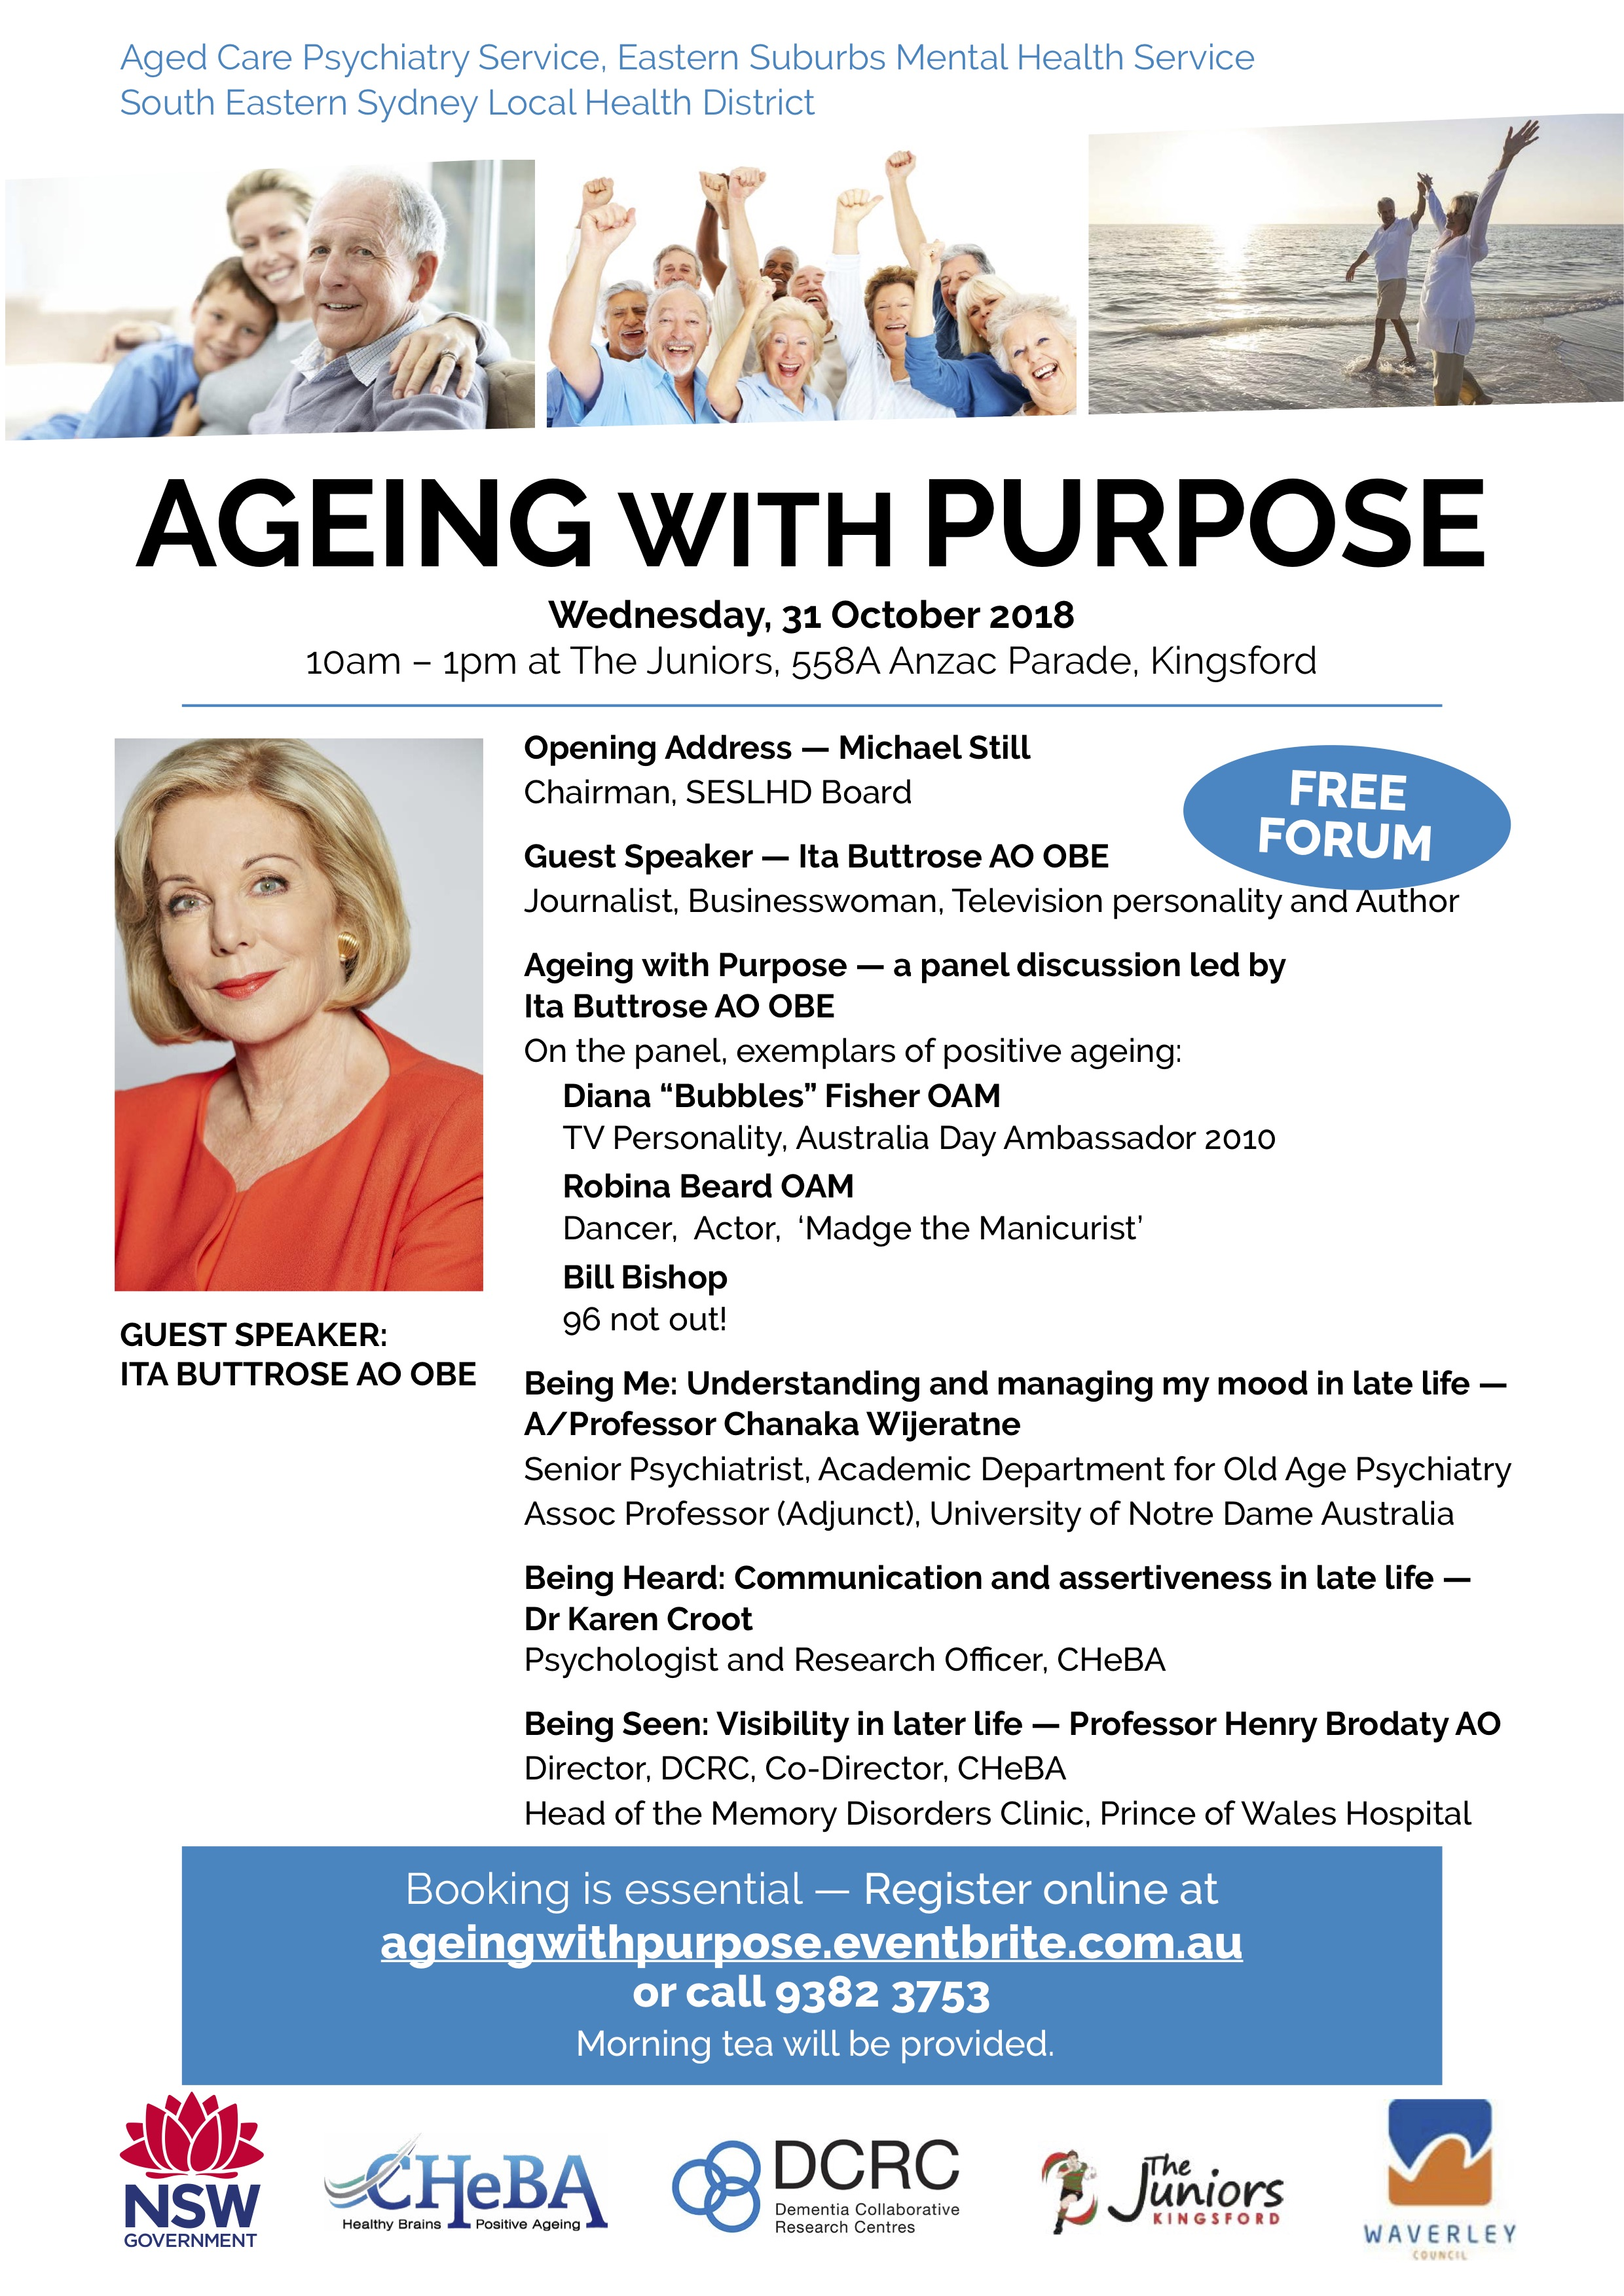 Ageing with Purpose 31.10.2018.jpg